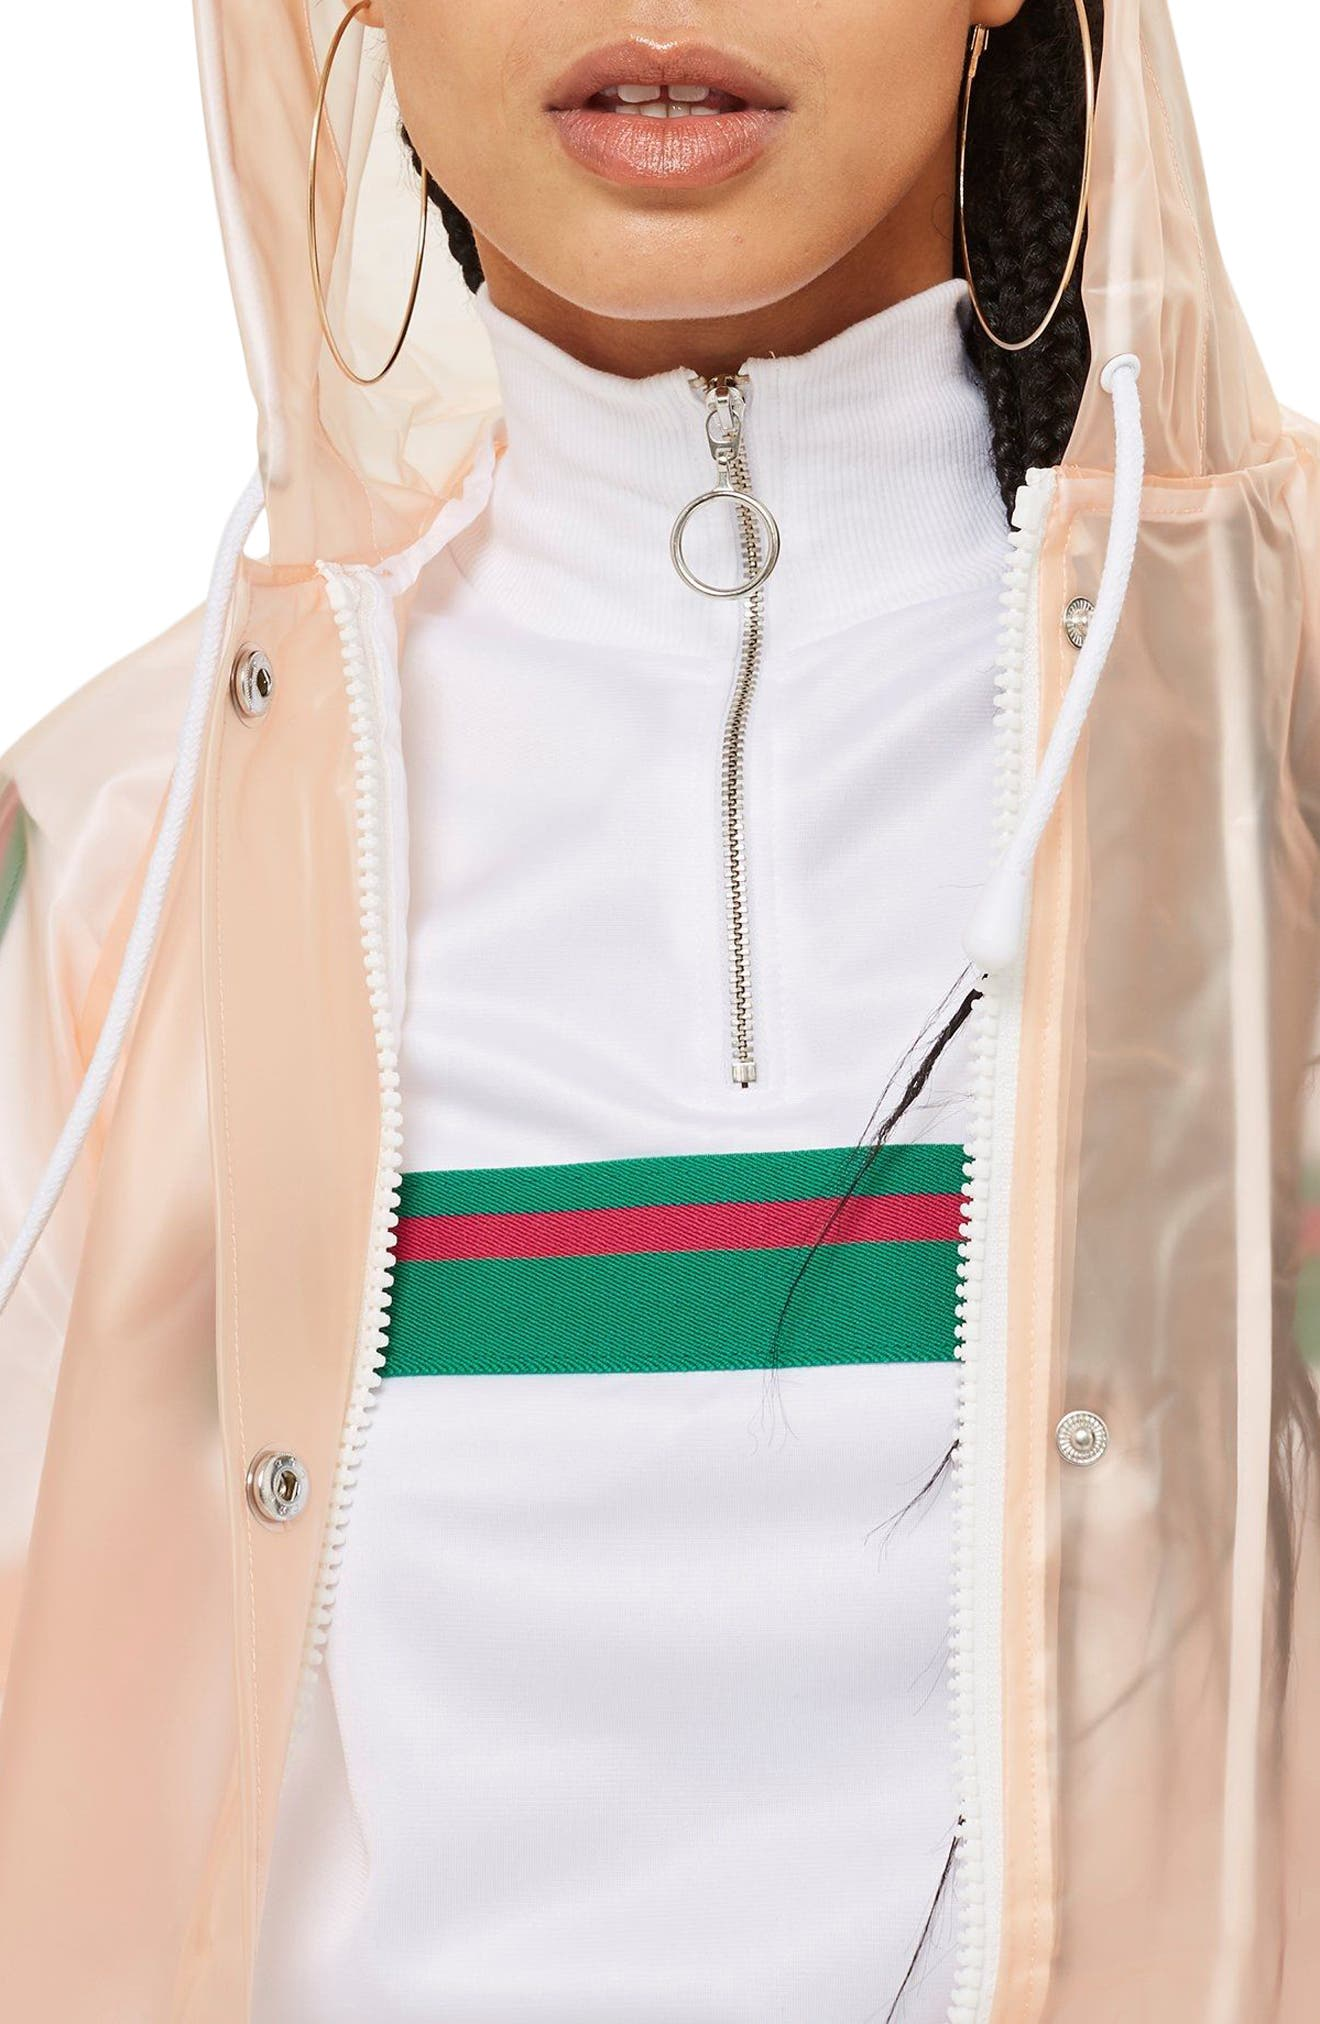 Frosted Marge Mac Rain Jacket,                             Alternate thumbnail 3, color,                             Peach Multi